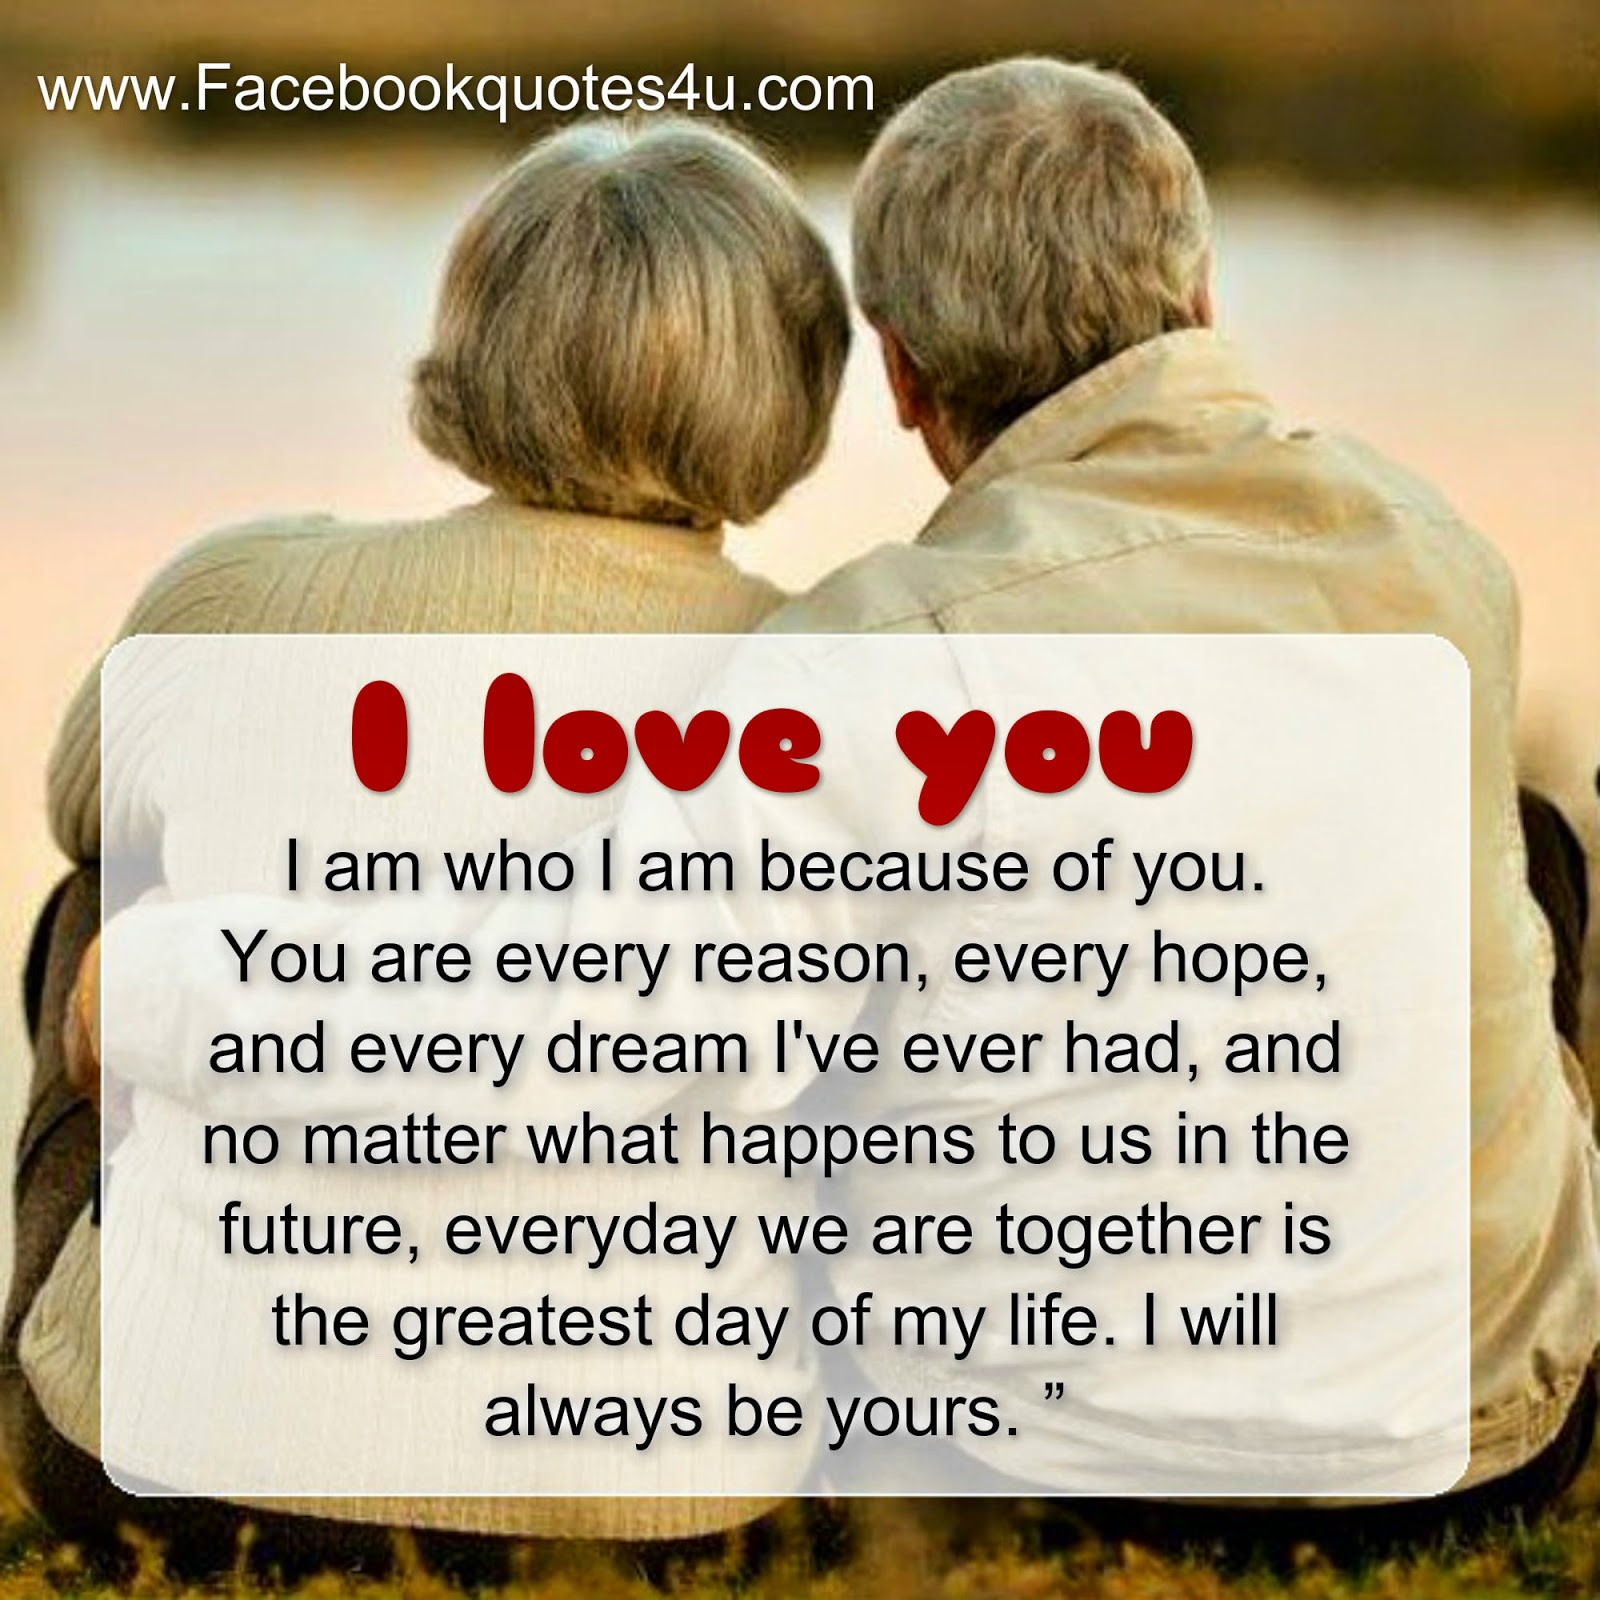 "No matter what happens to us I will always be yours ""I love you"